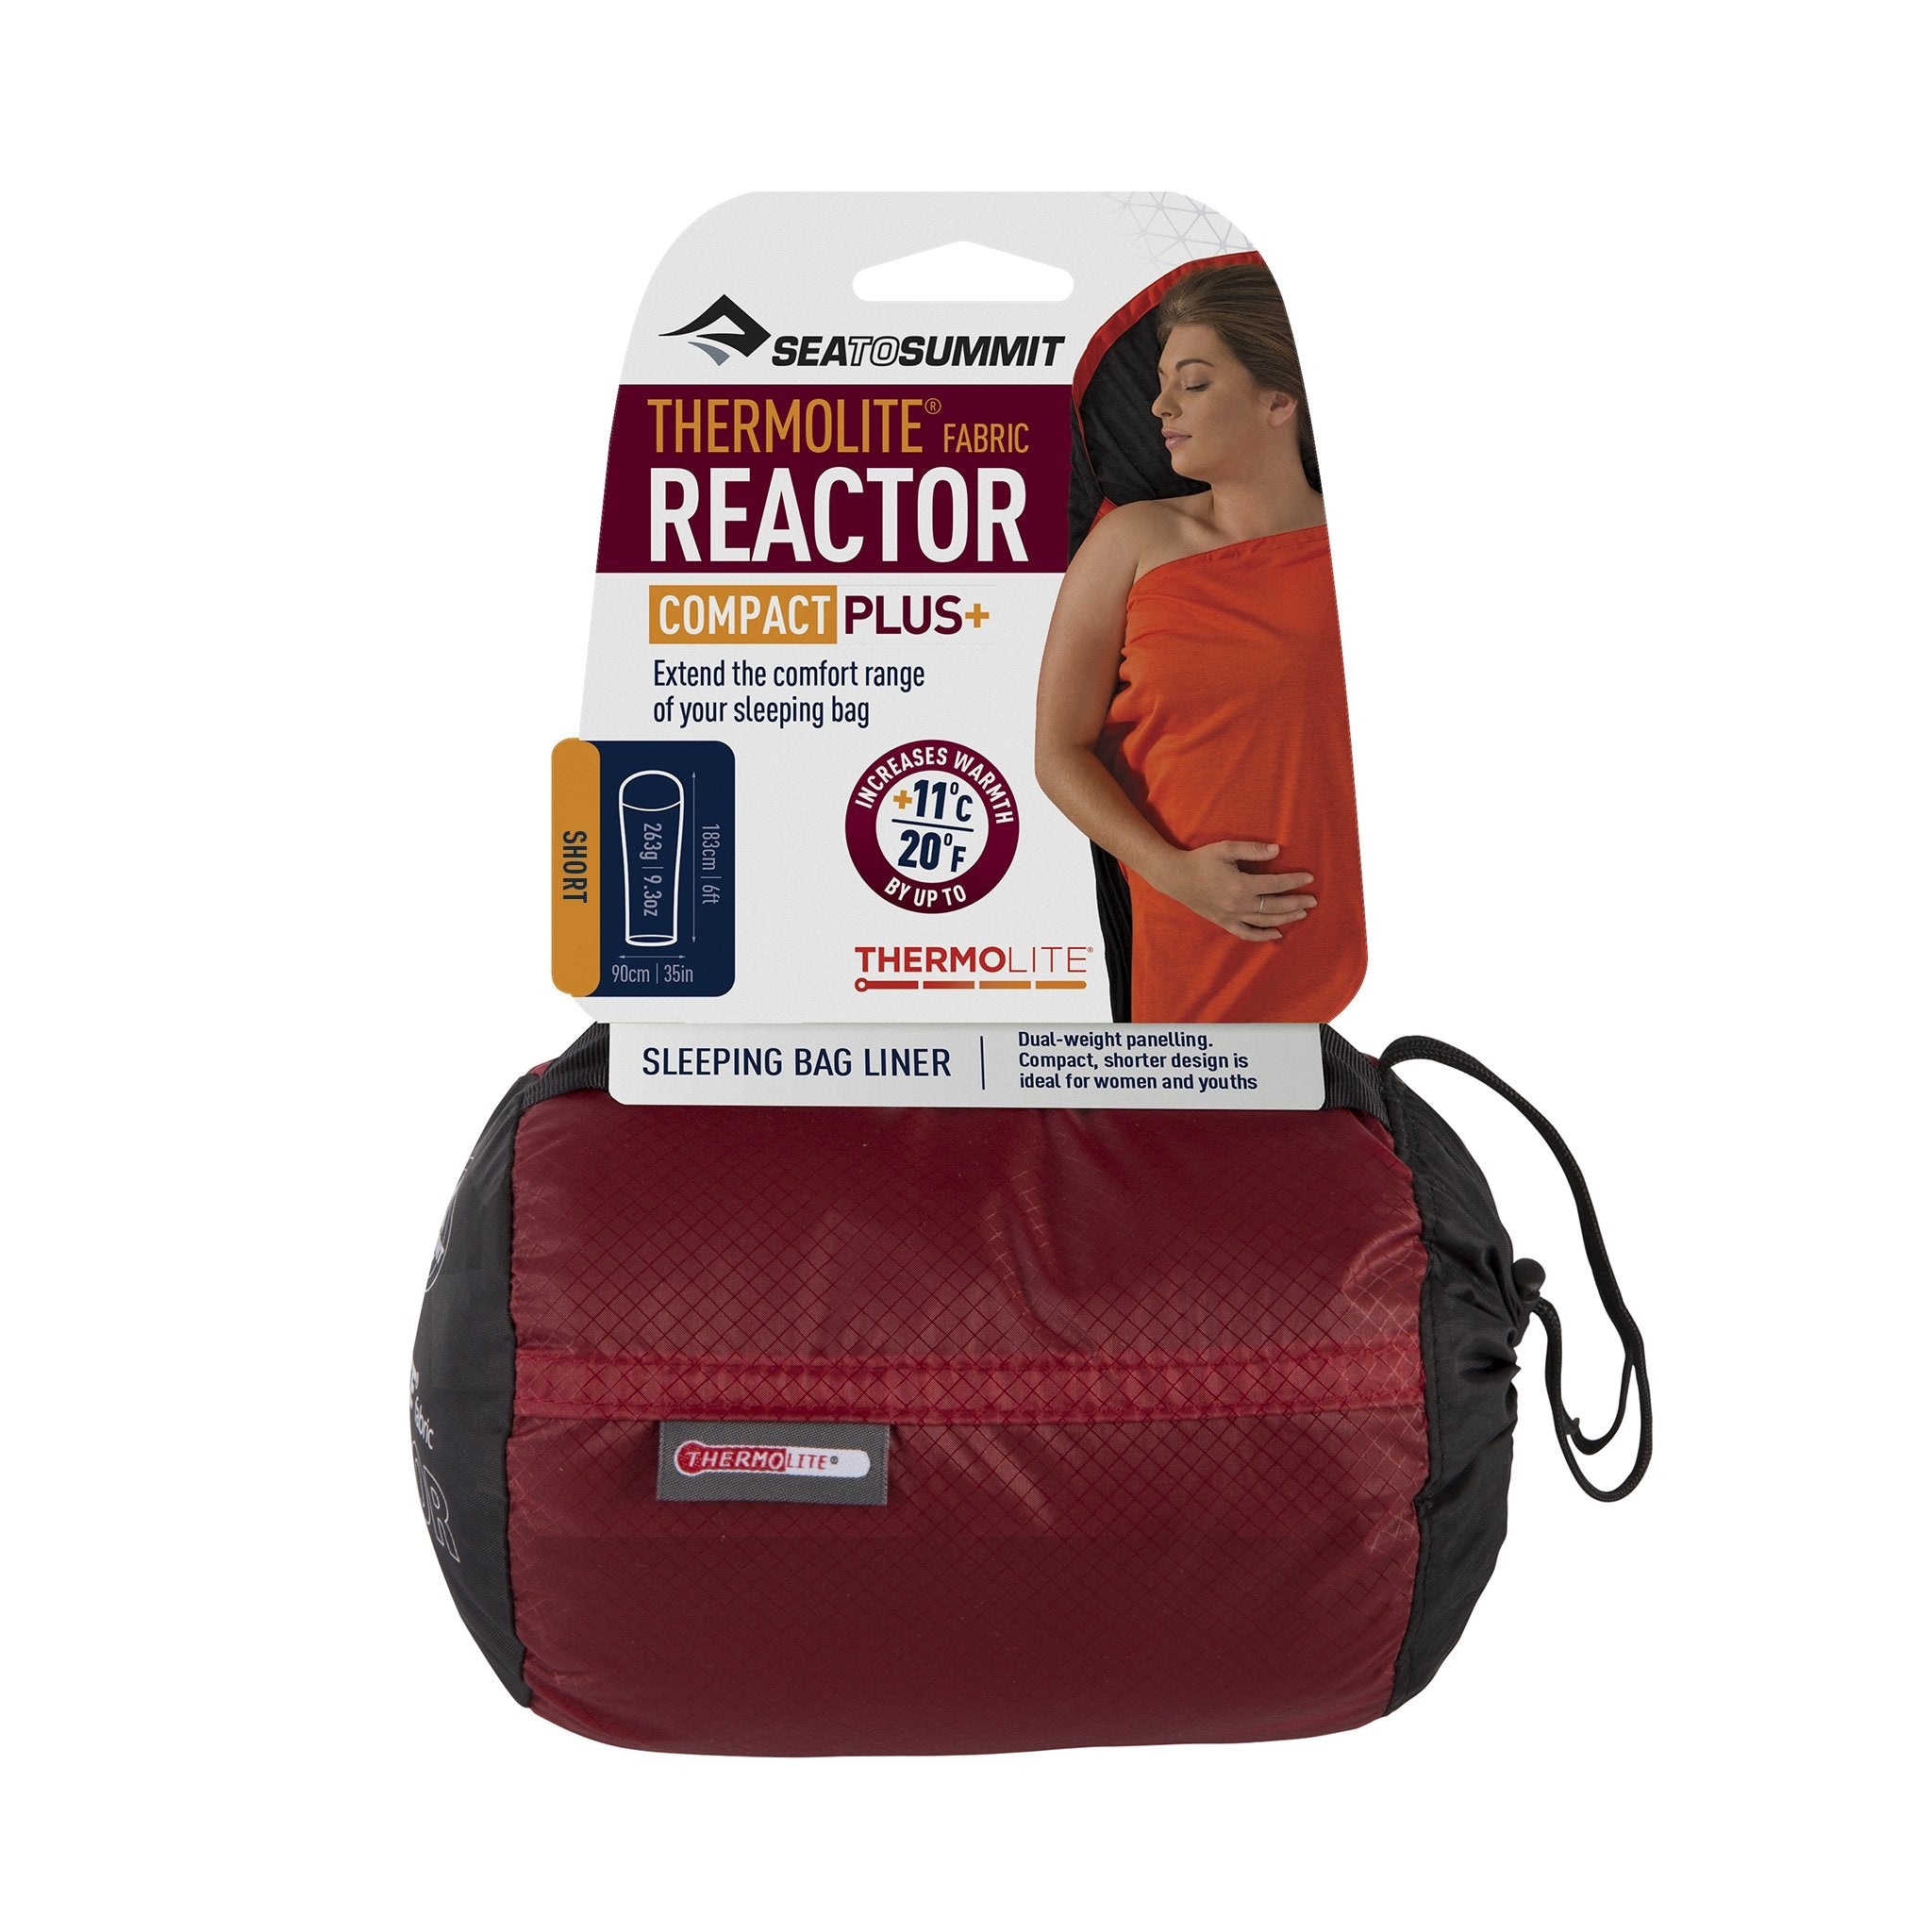 THERMOLITE FABRIC REACTOR COMPACT PLUS